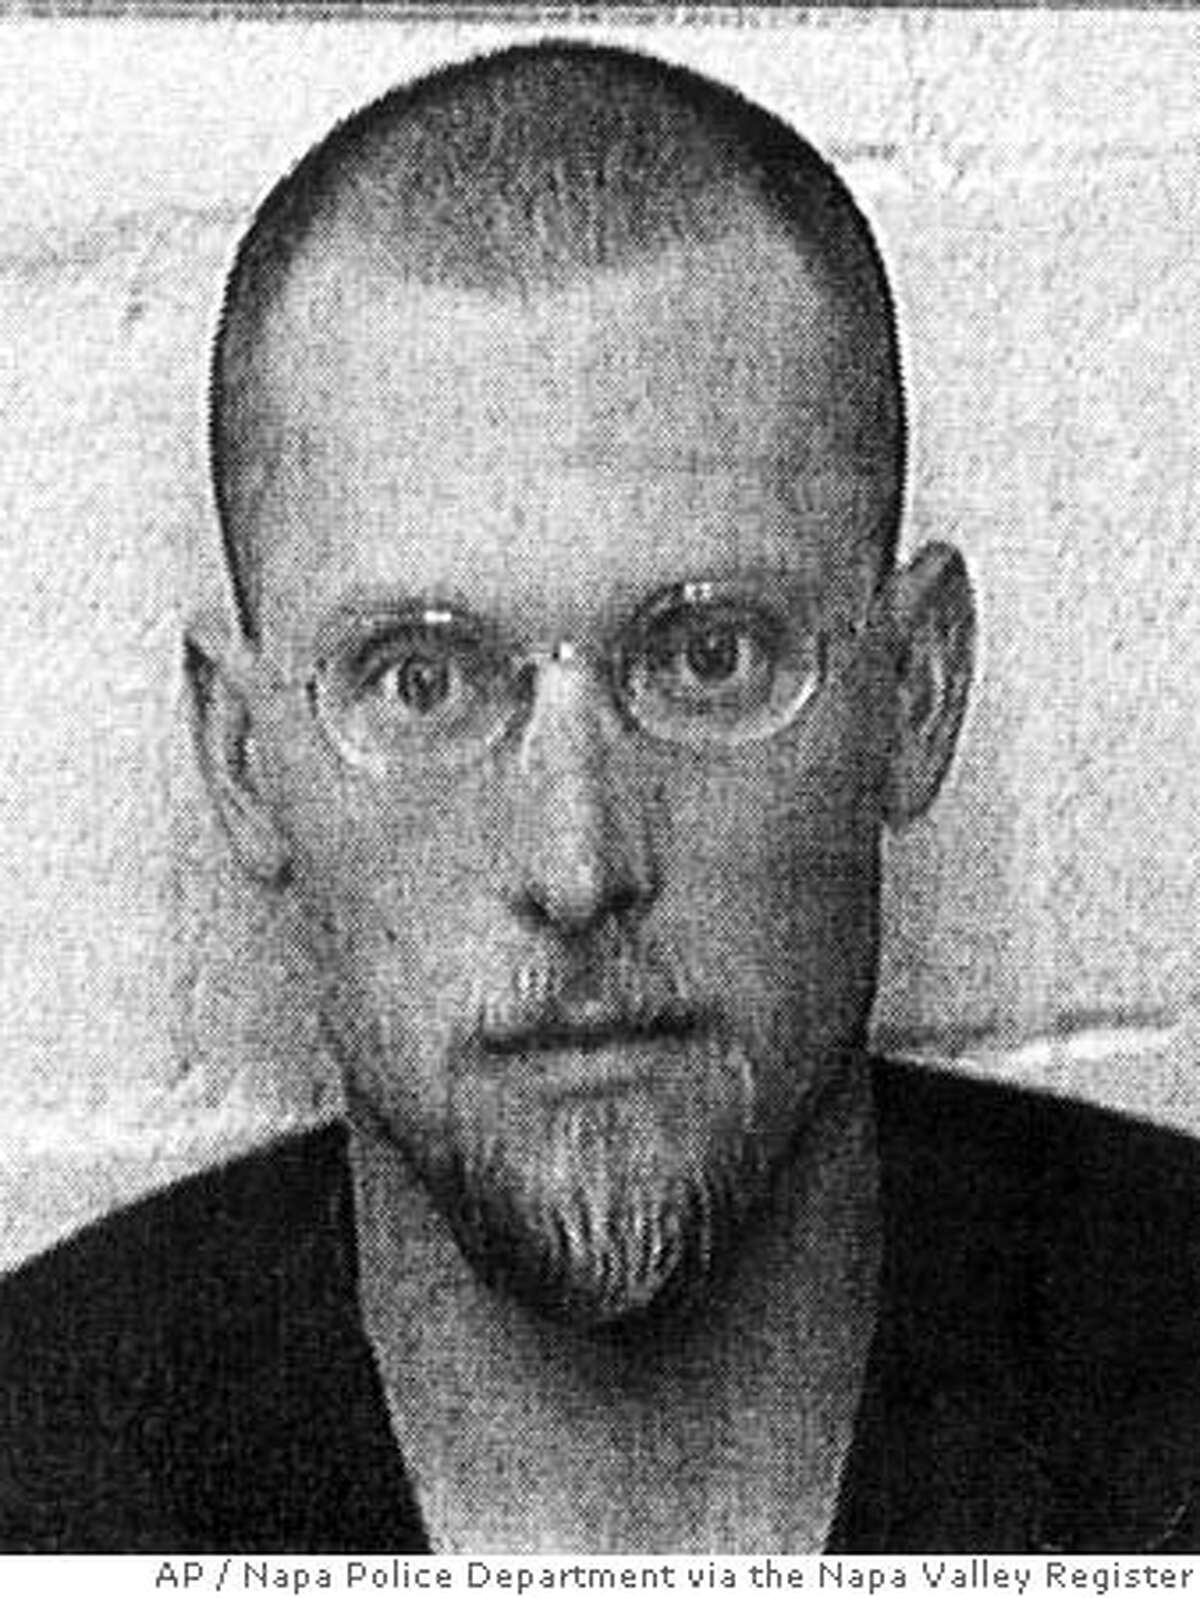 This Tuesday, Sept. 27, 2005, booking photo provided by the Napa Police Department shows suspected murderer Eric Copple in Napa Calif. Copple was booked on two counts of murder in the deaths of Leslie Ann Mazzara and Adrienne Insogna, both 26. The women were fatally stabbed at home Nov. 1, 2004. A third roommate called police when she heard a struggle and then ran to safety. Authorities did not immediately disclose what led to the arrests. (AP Photo/Napa Police Department via the Napa Valley Register BEST QUALITY AVAILABLE